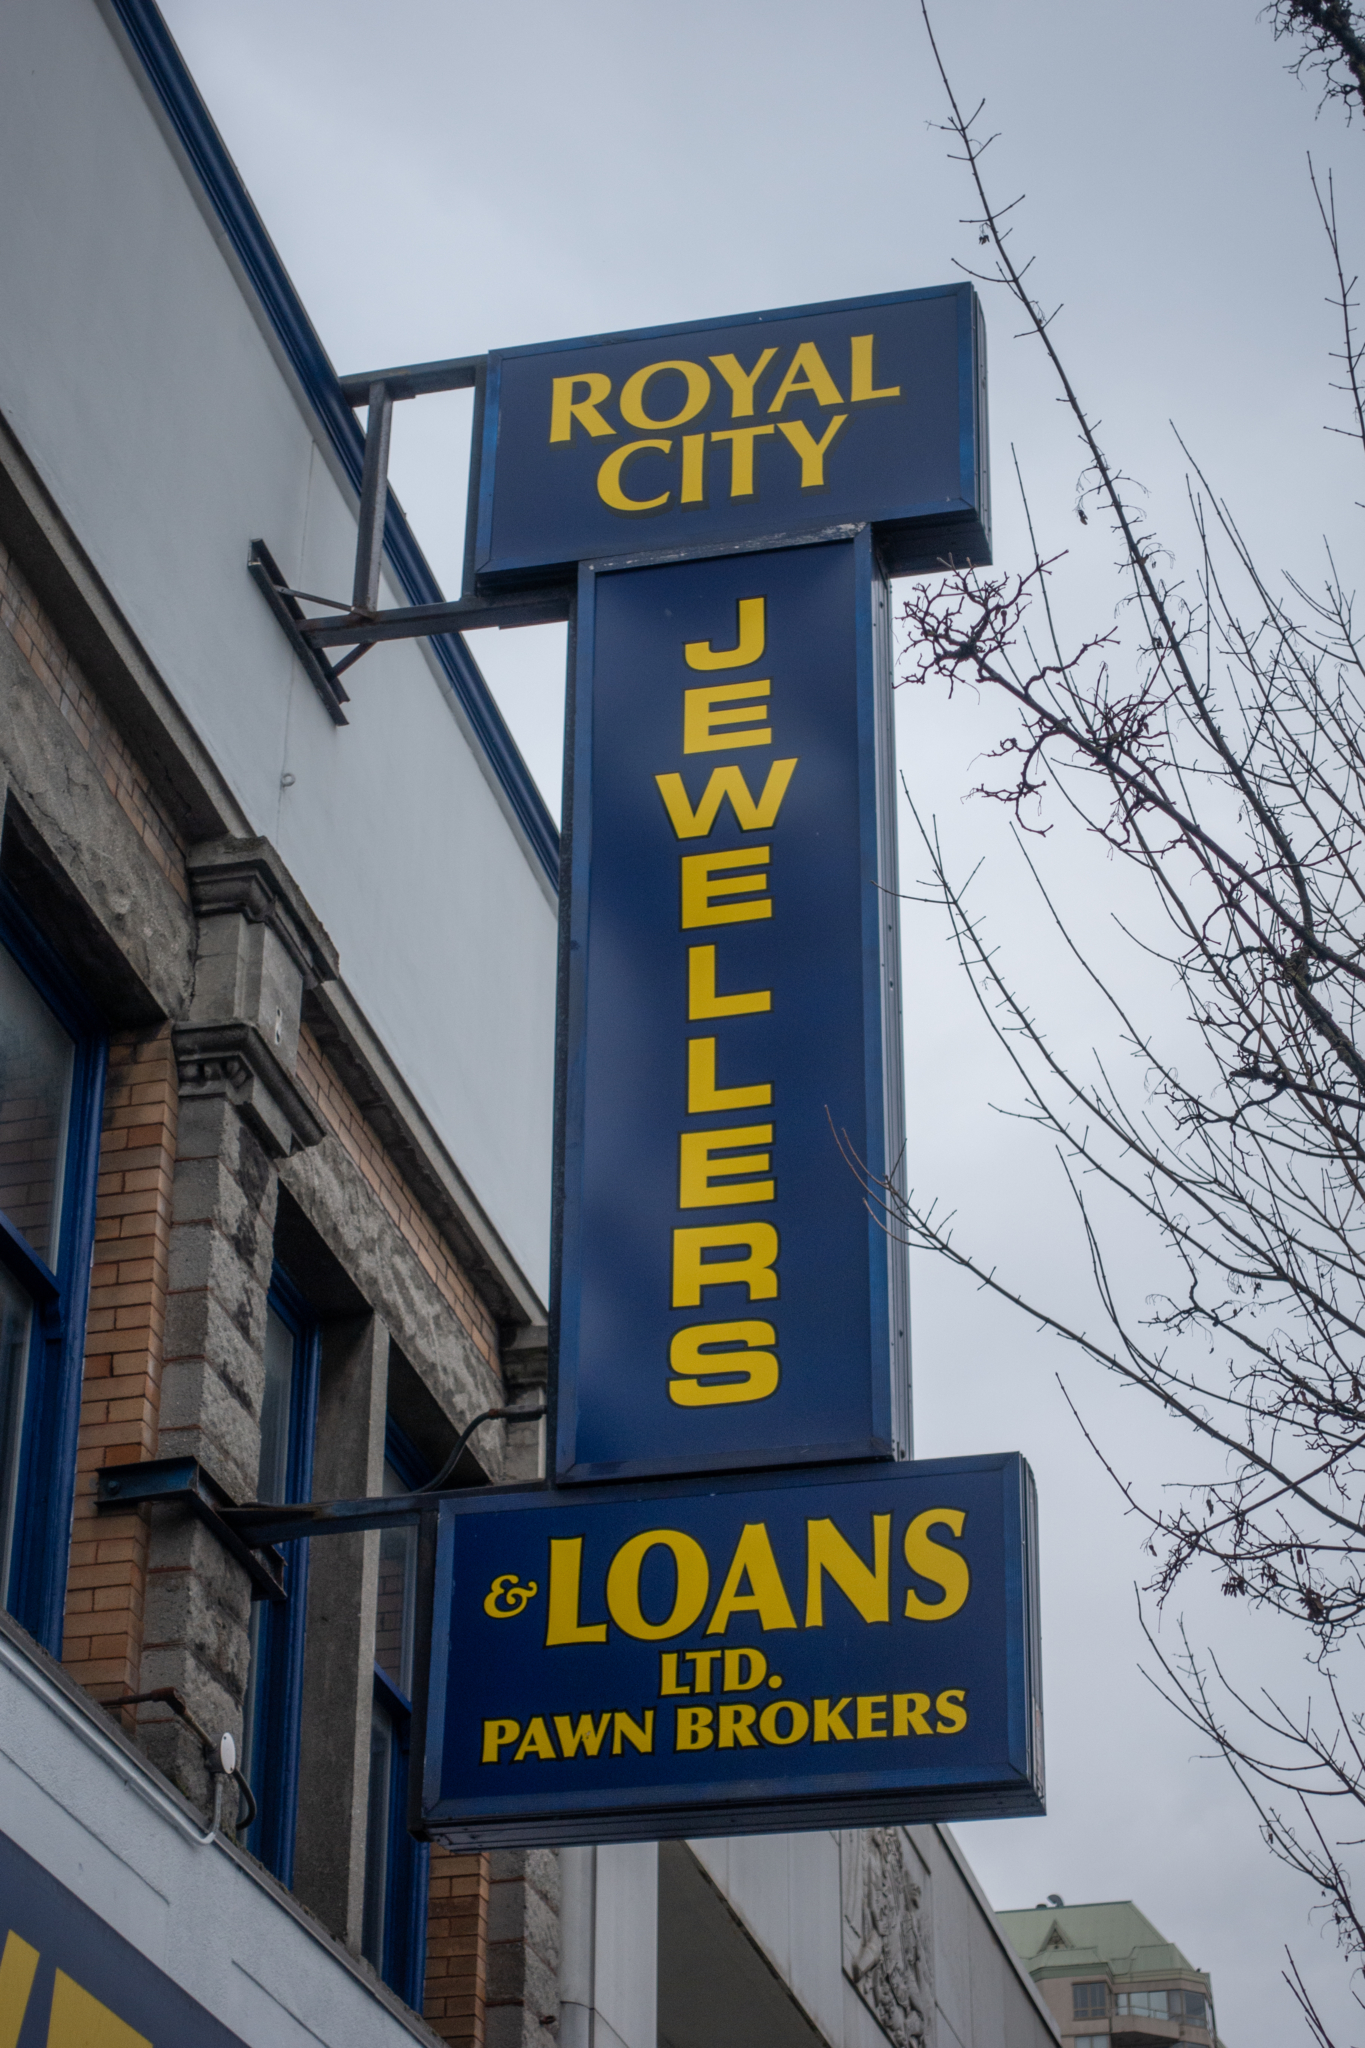 Royal City Jewellers & Loans Ltd in New Westminster